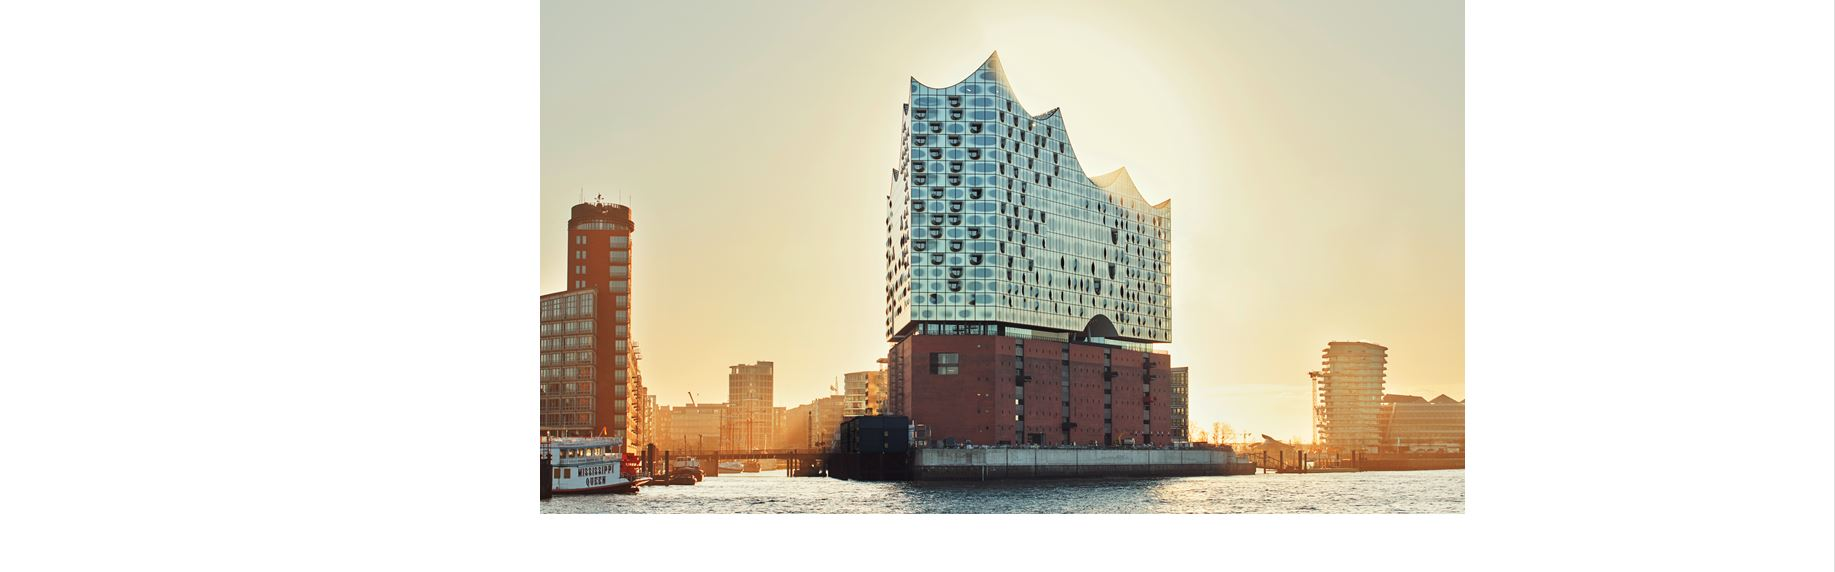 Immobilien in Hamburg - Elbphi Header 2.JPG